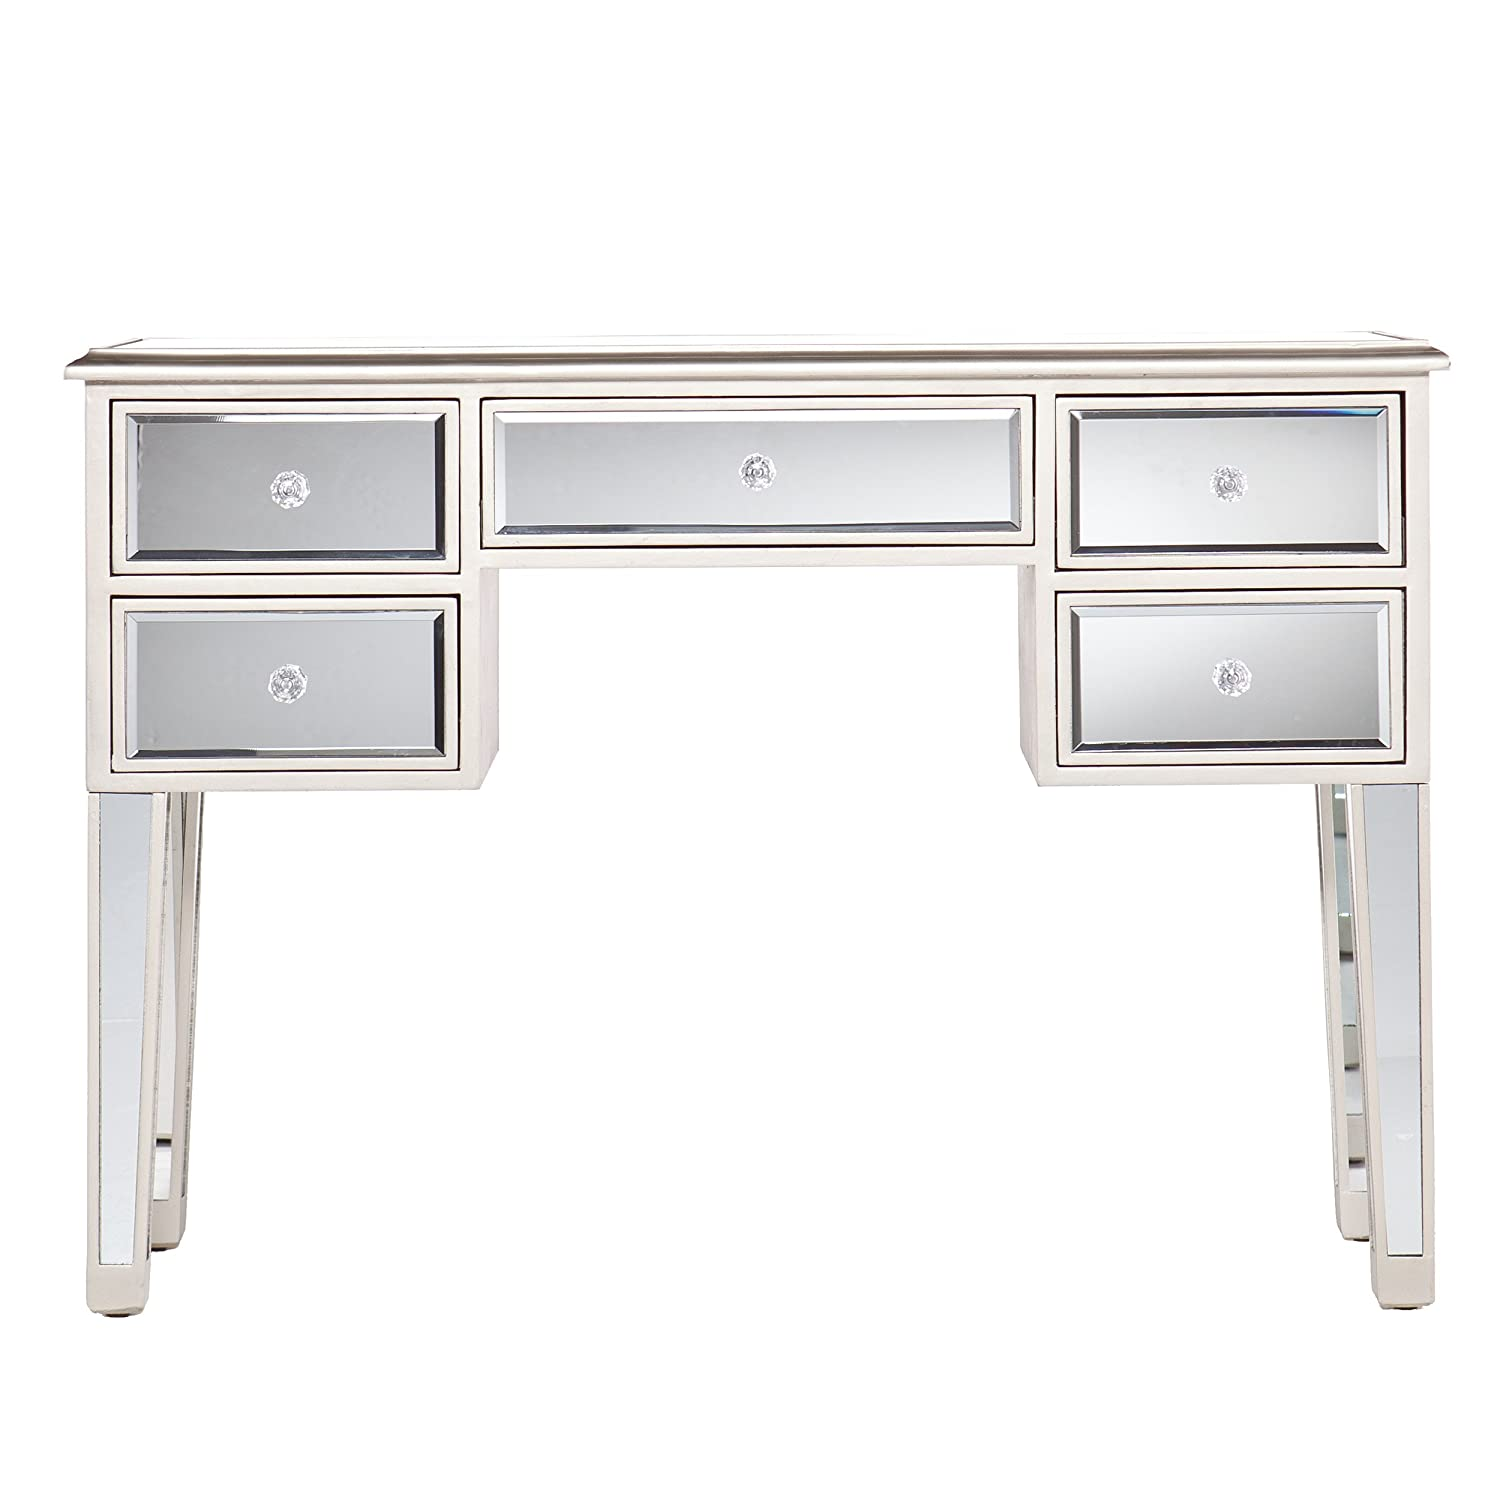 Mirage Mirrored Desk Console Table – Mirror Surface w Champagne Trim – Glam Style